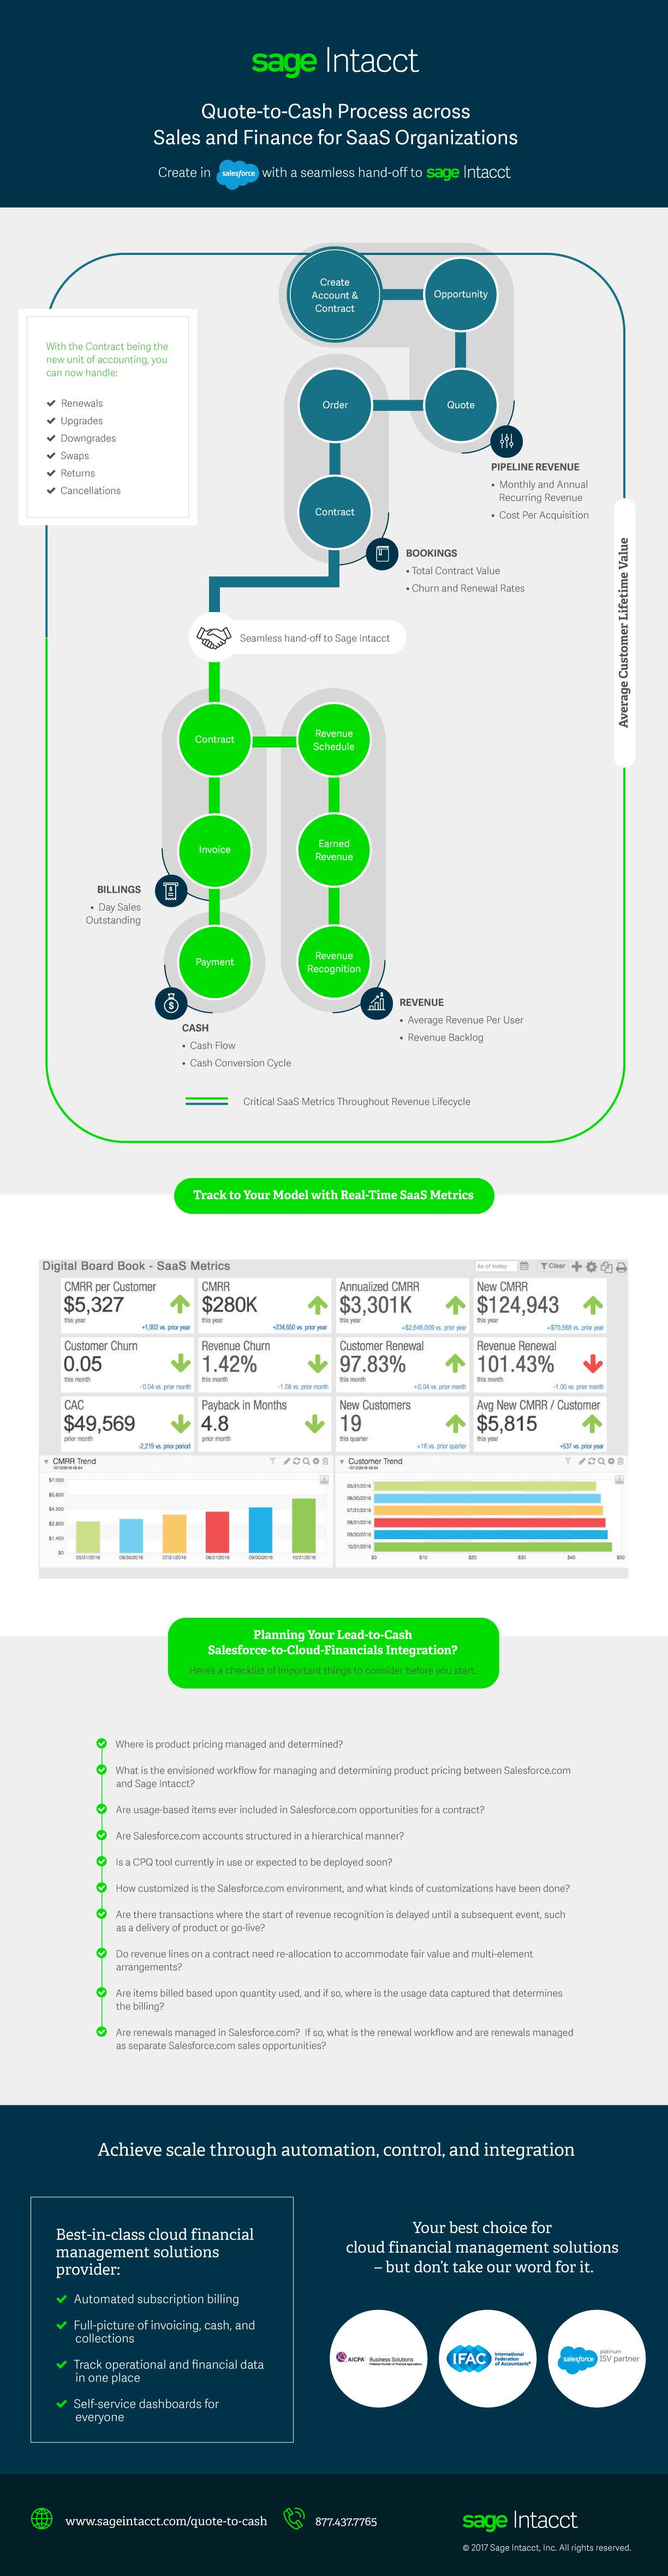 Quote To Cash Quotetocash Process Infographic For Saas Organizations  Sage